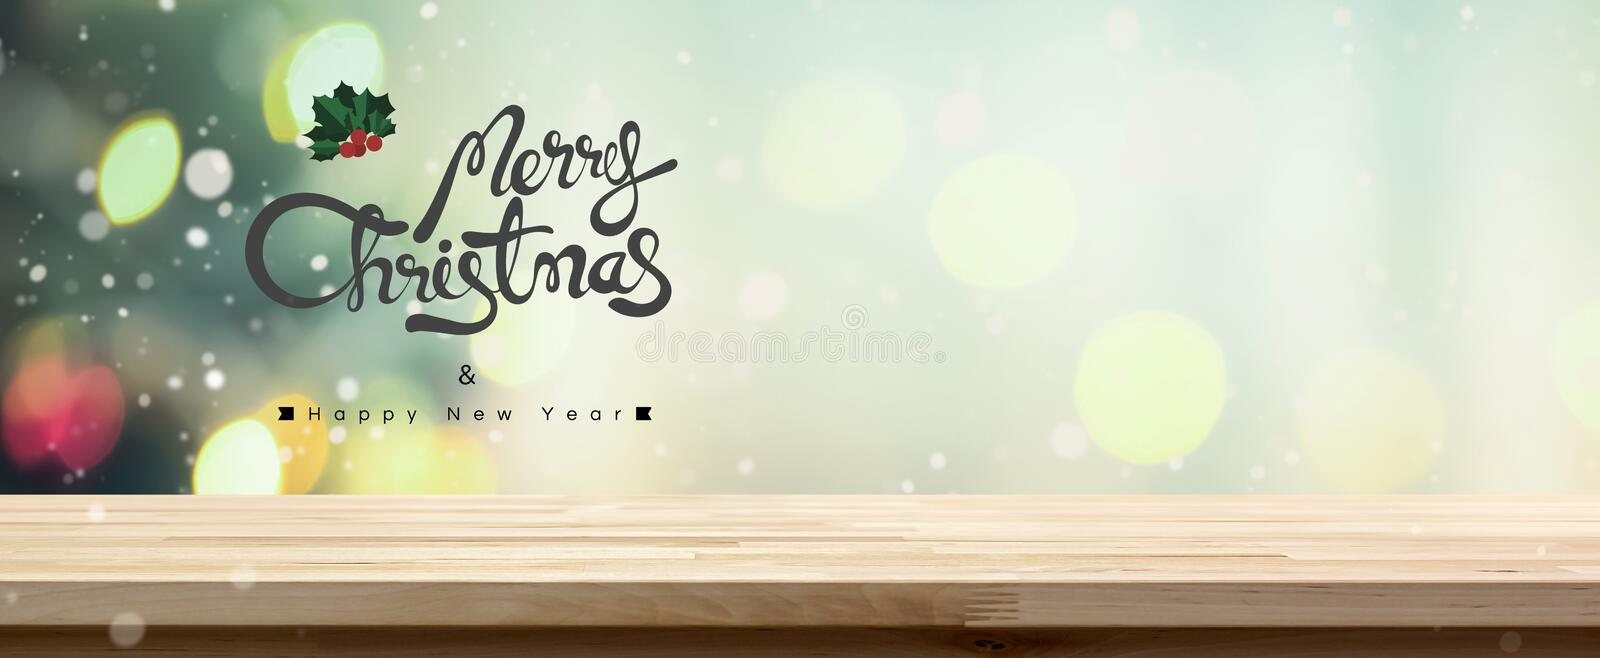 Merry Christmas and Happy New Year tabletop banner background. With colorful bokeh royalty free stock image